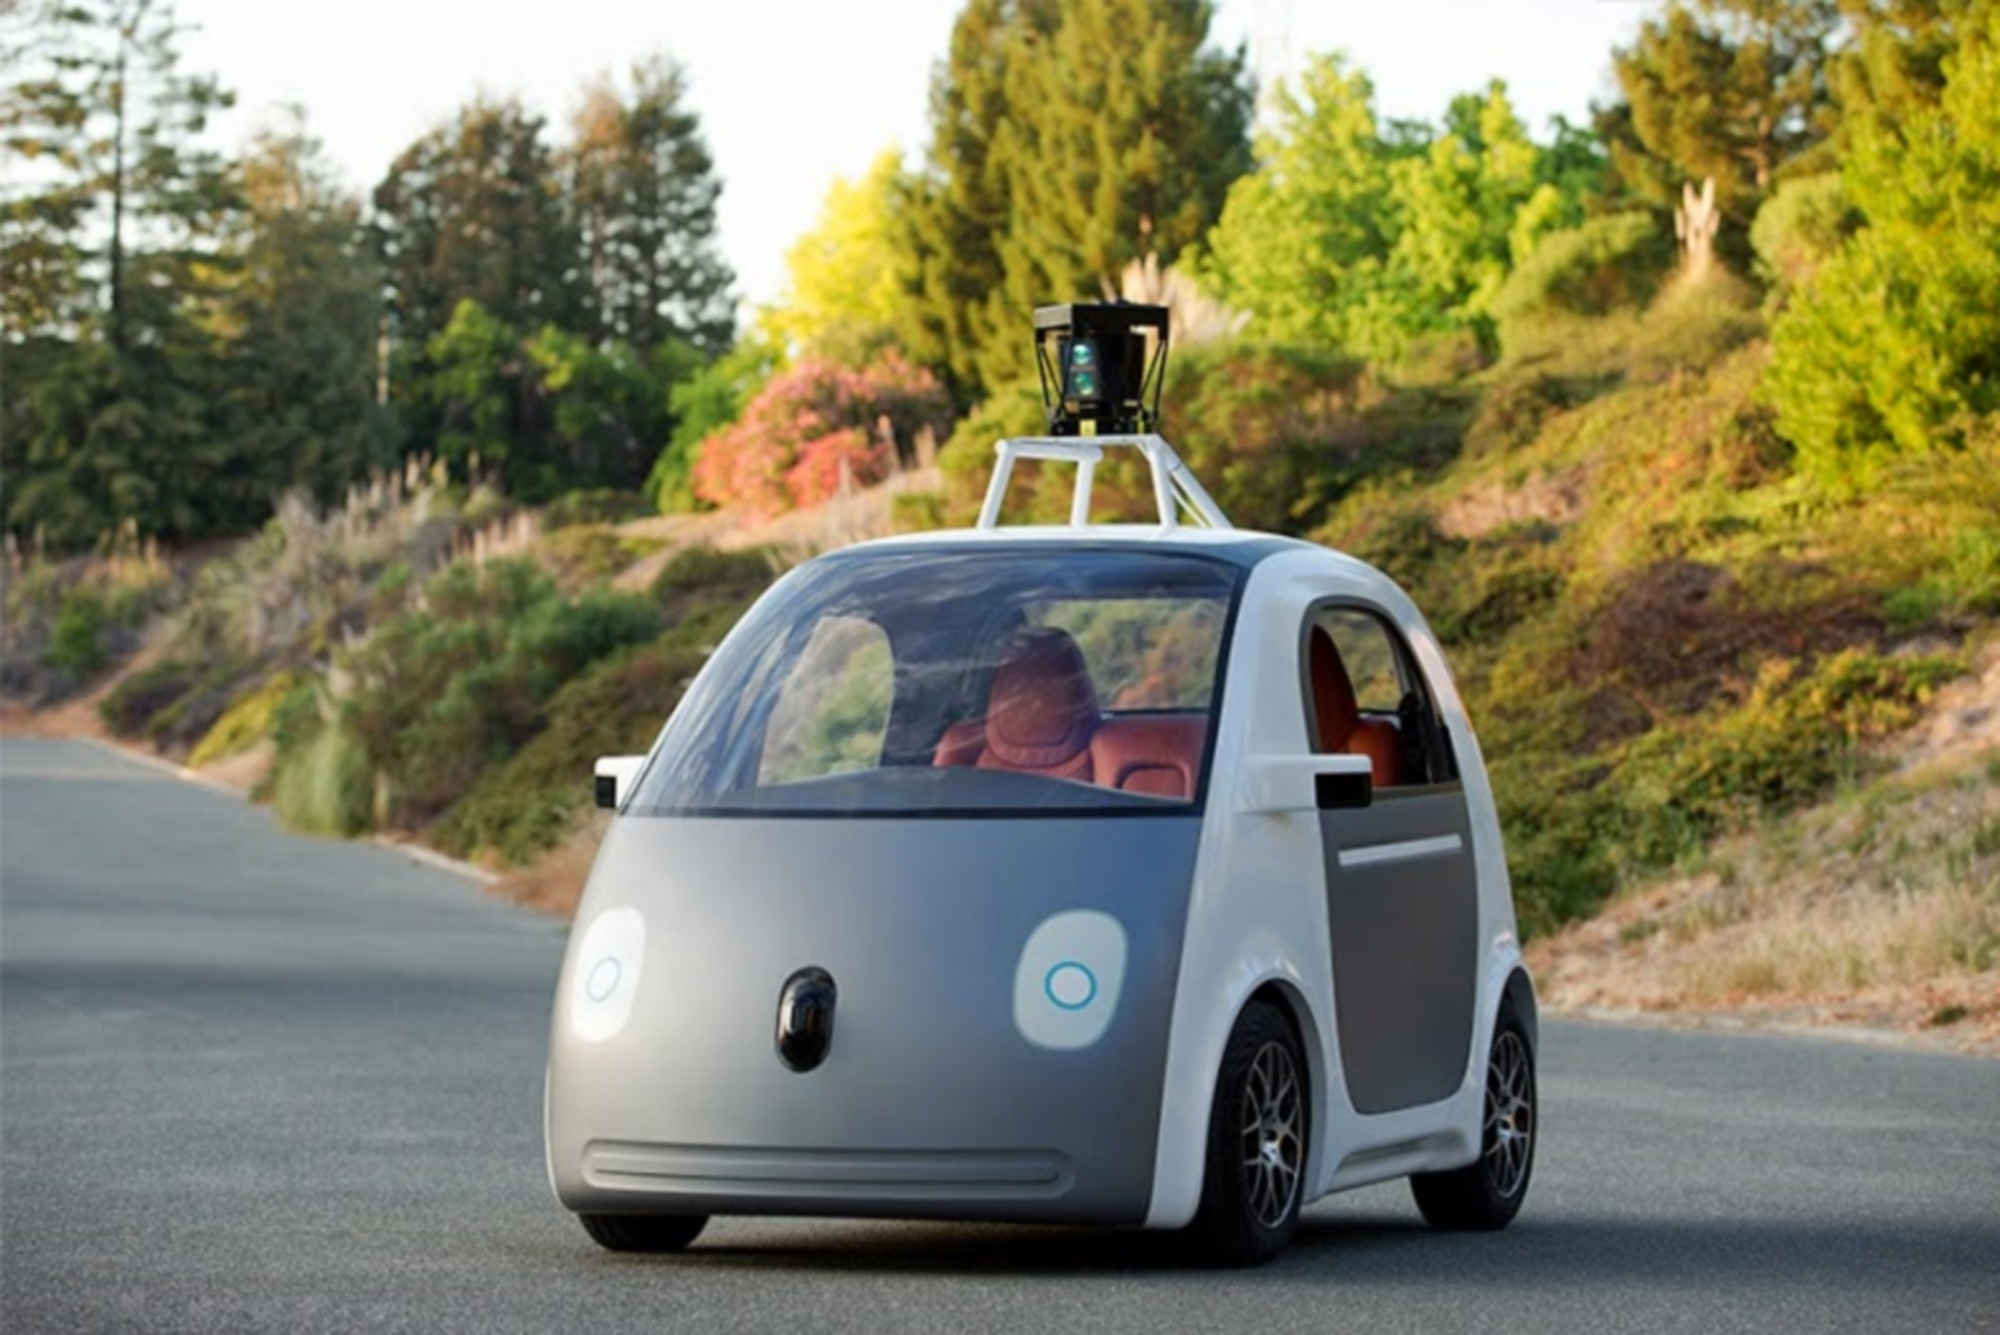 Autonomes Fahren - Der American Way of Drive